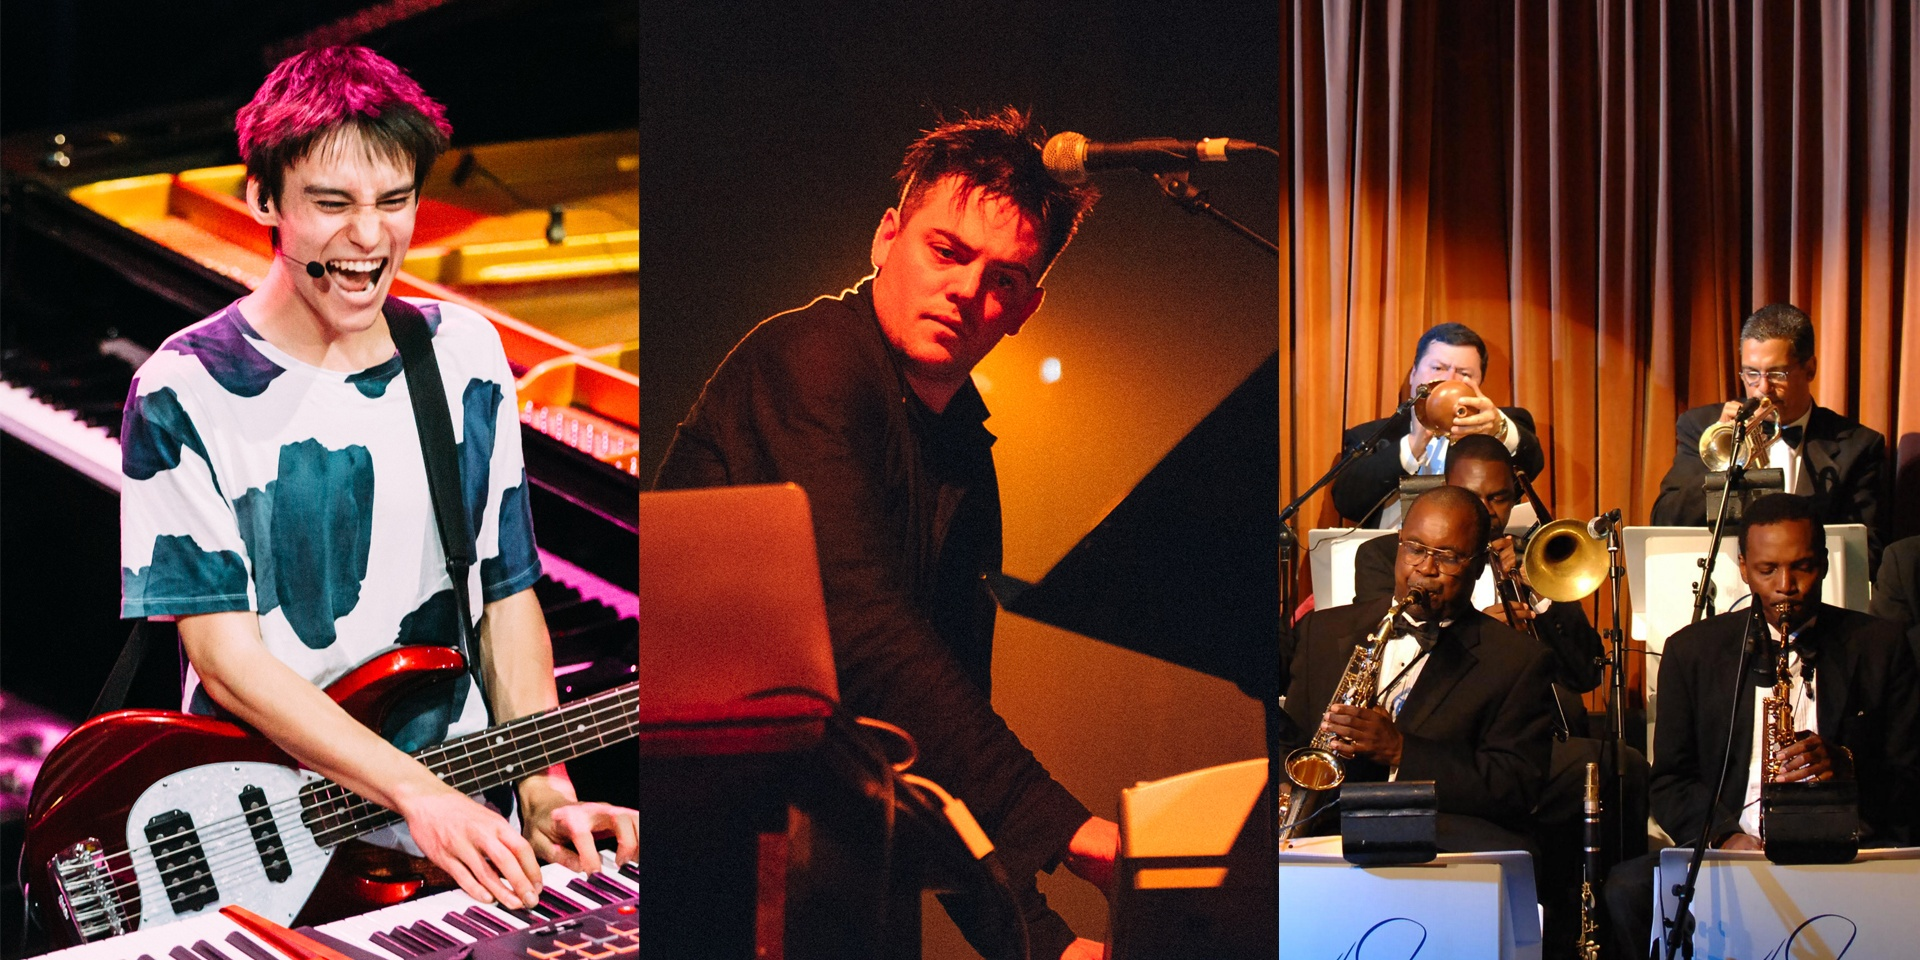 SIFA releases festival lineup: Jacob Collier, Nico Muhly, Duke Ellington Orchestra, Tcheka, Intriguant, SA, NADA and more